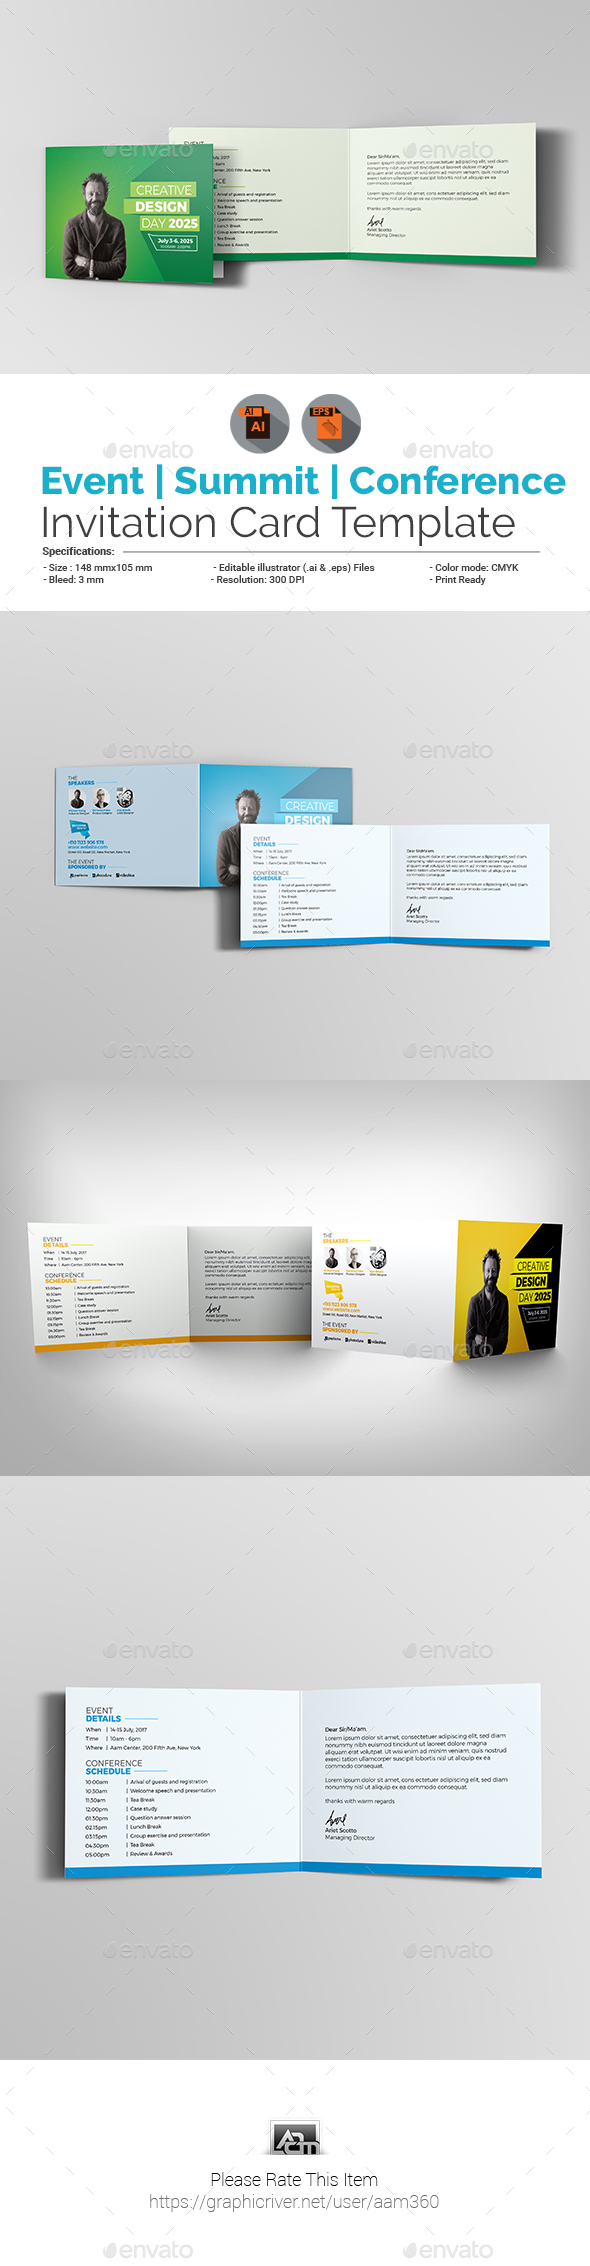 Event / Summit / Conference Invitation Card Template - Cards & Invites Print Templates